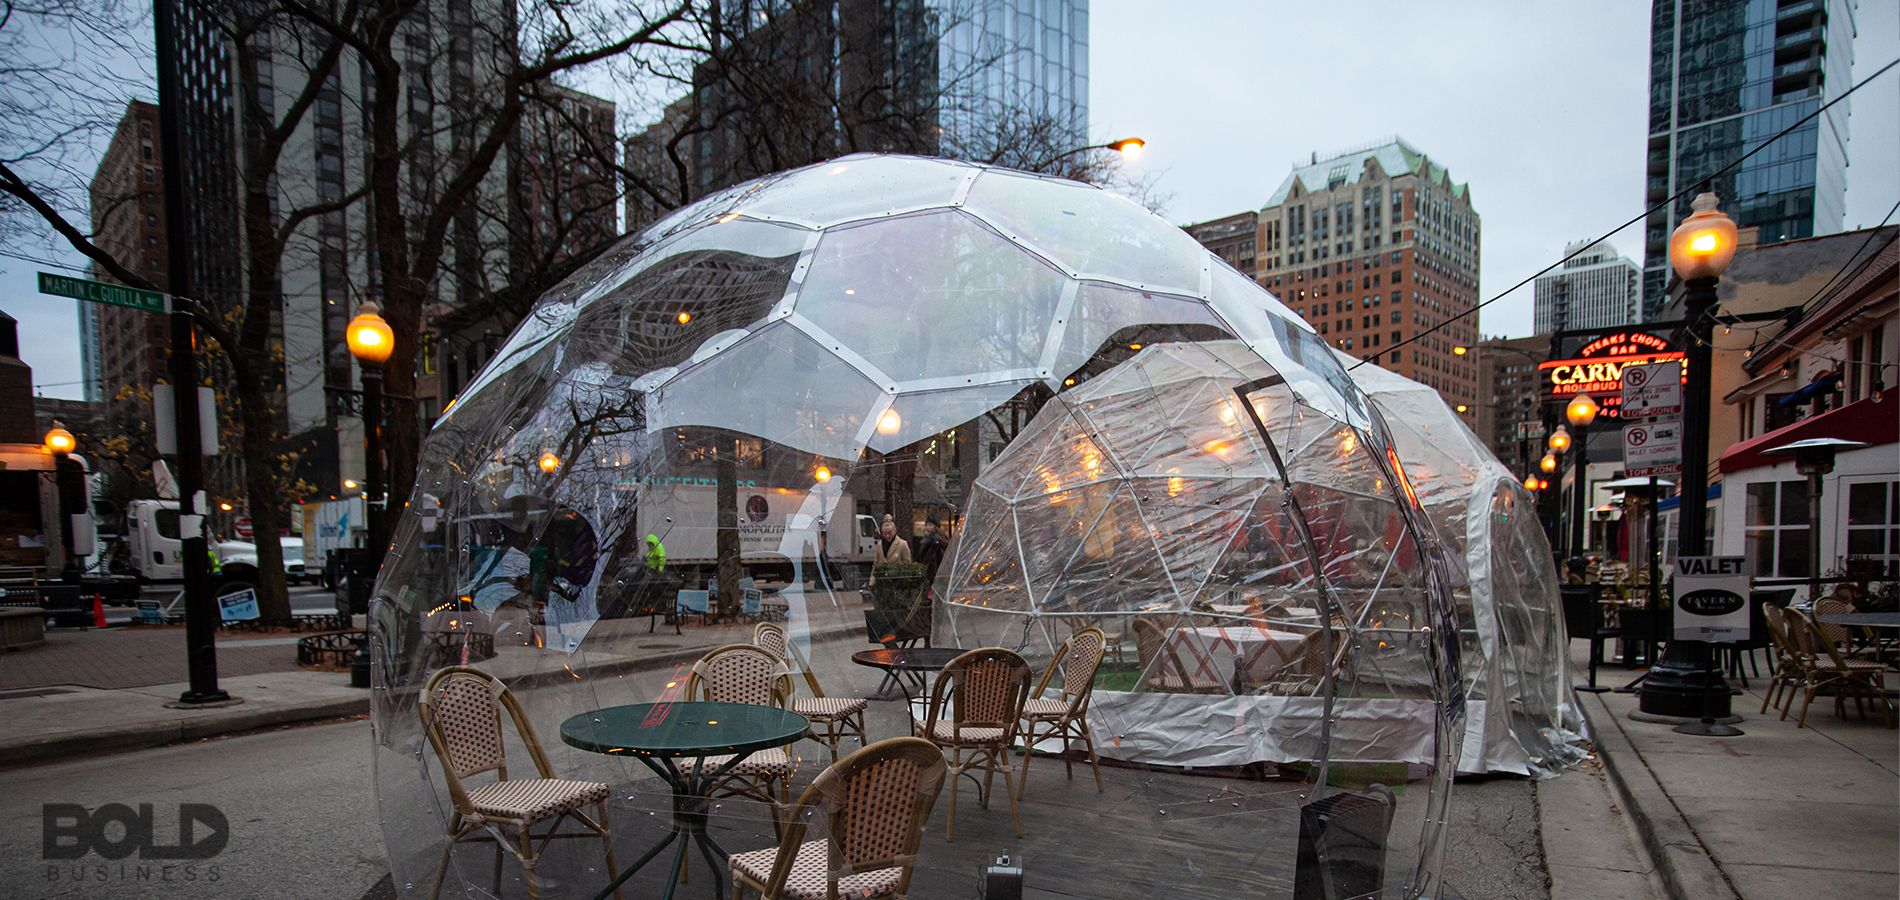 An outdoor table encased in a bubble